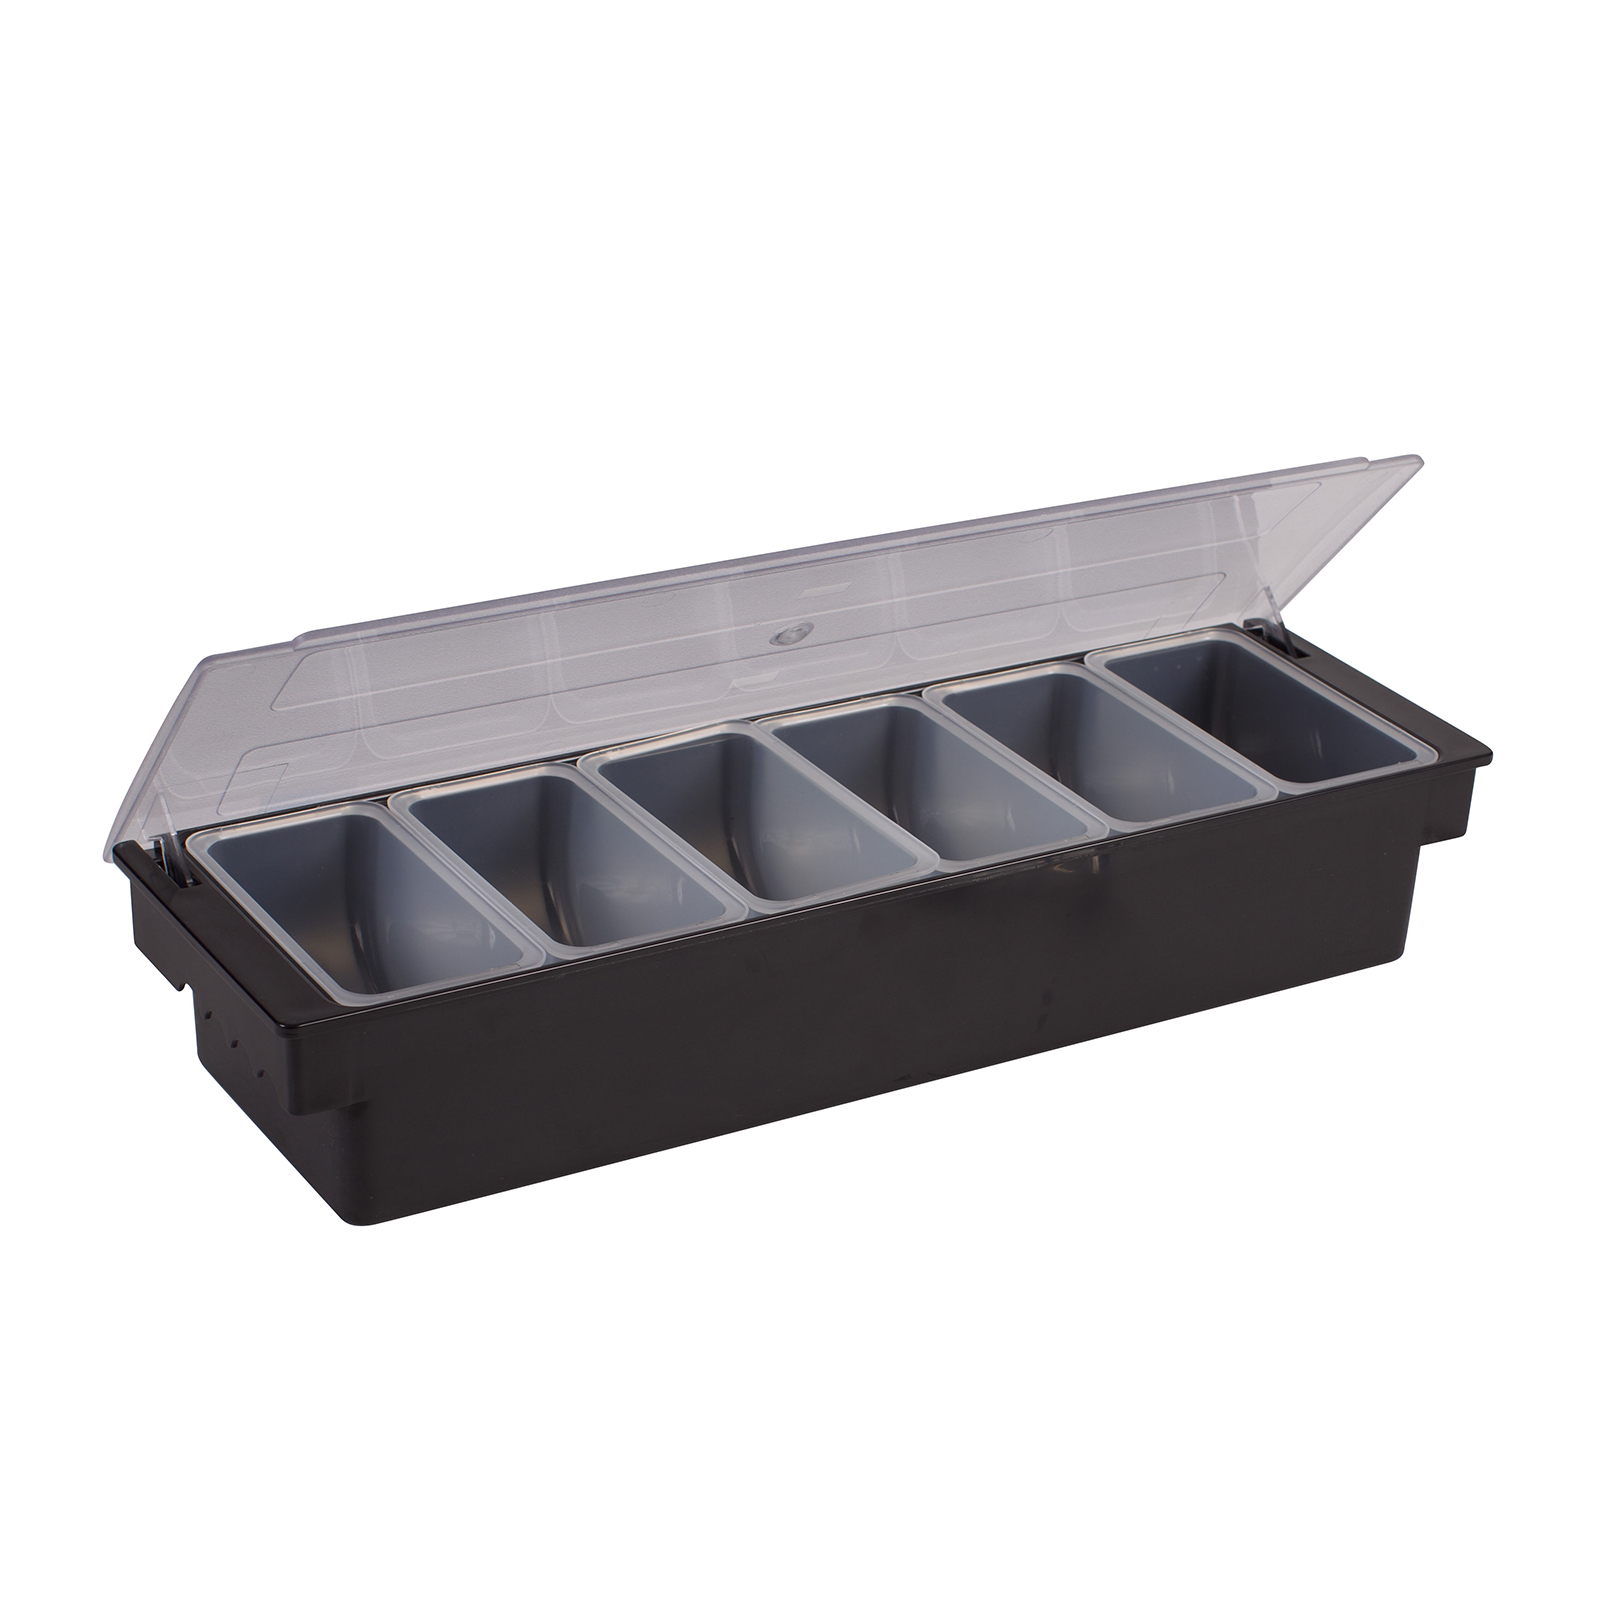 Winco CCH-6 condiment caddy, countertop organizer